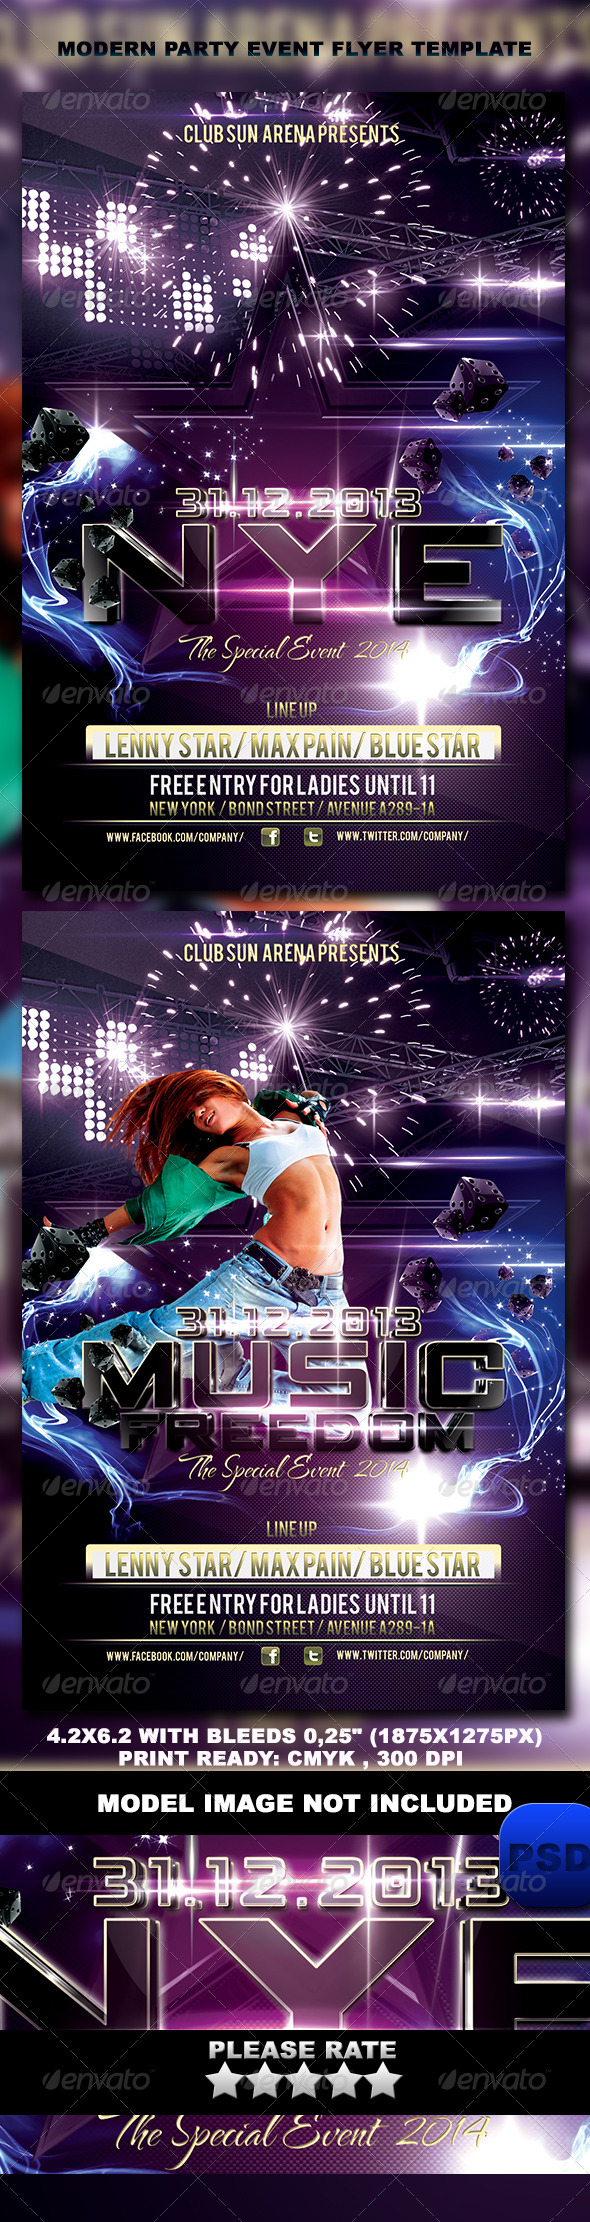 Modern Party Event Flyer Template - Events Flyers